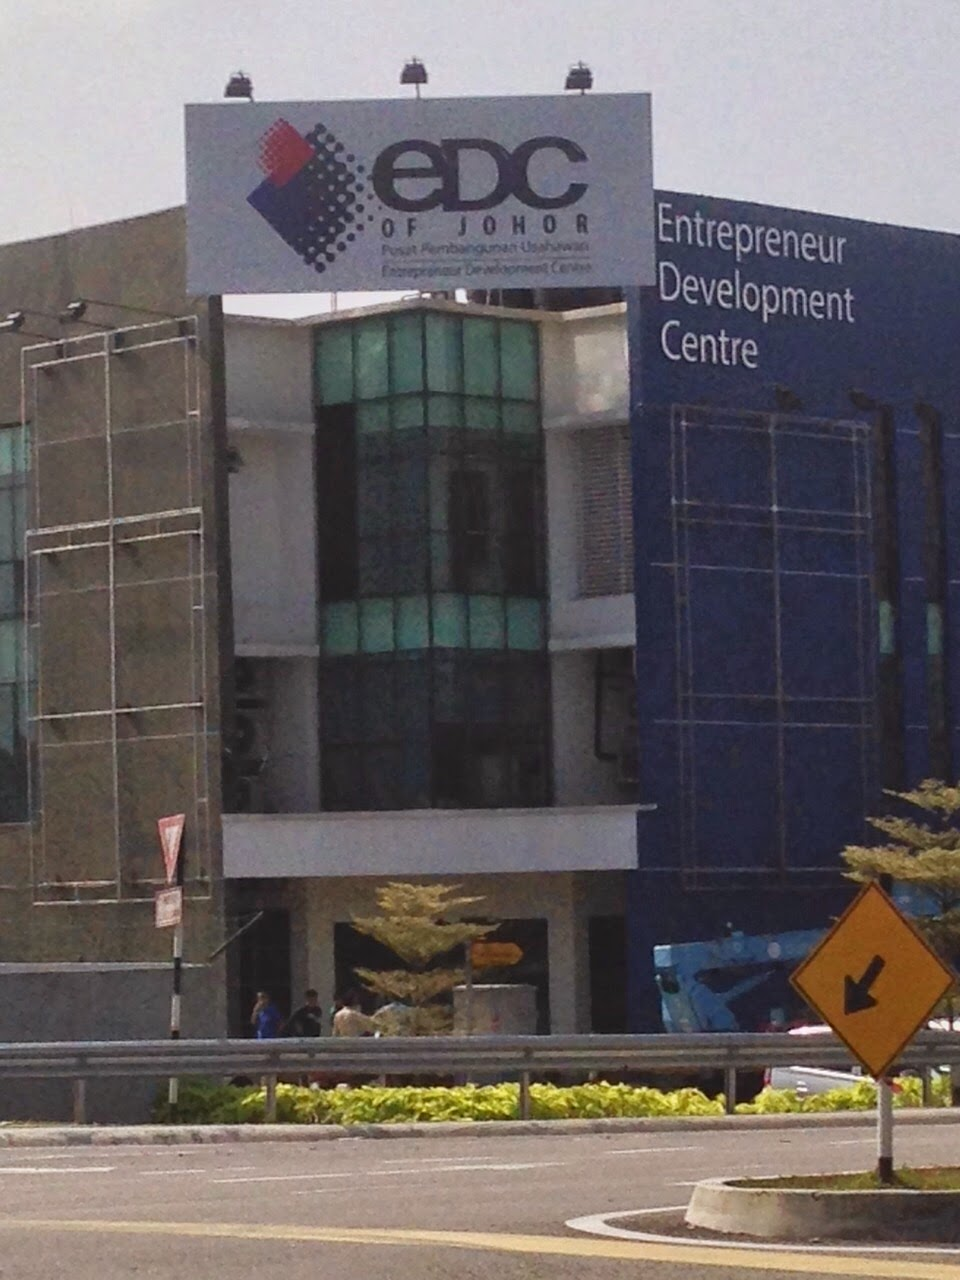 ENTERPRENEUR DEVELOPMENT CENTRE